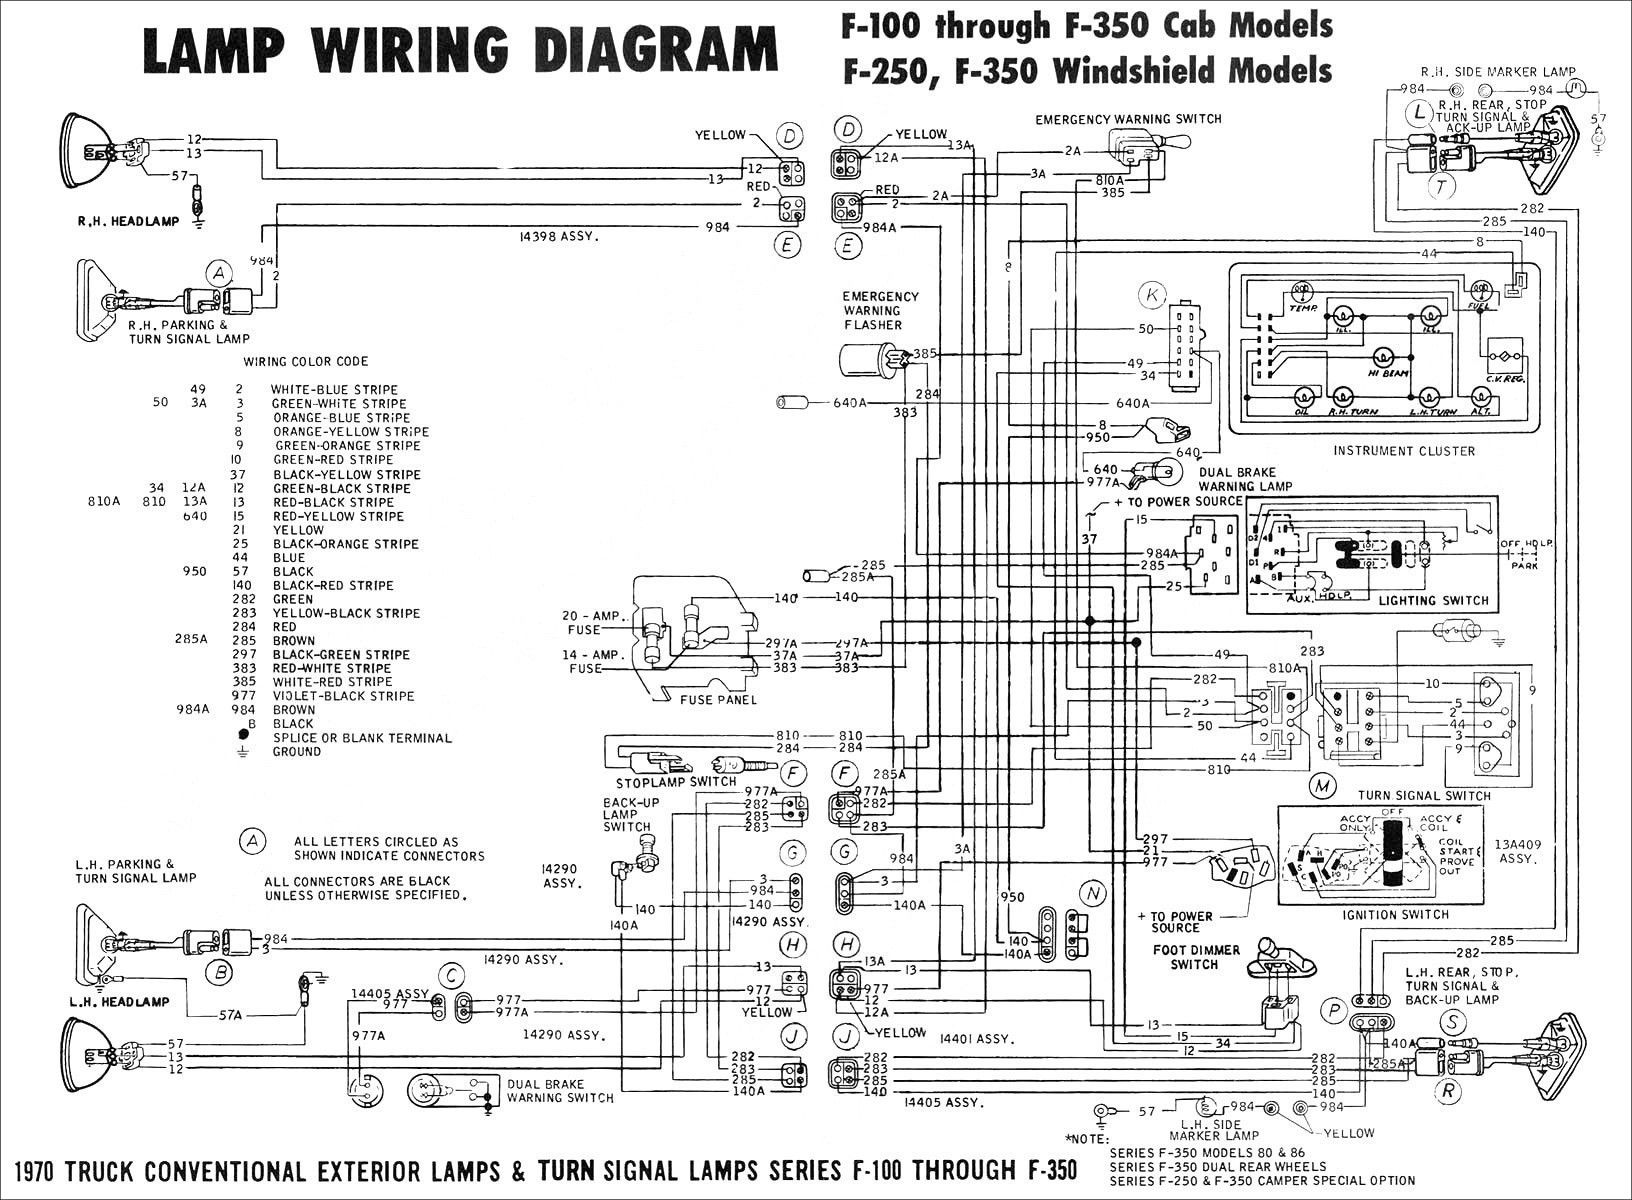 Unique Wiring Diagram Ac Split Mitsubishi Diagram Diagramtemplate Diagramsample Electrical Diagram Trailer Wiring Diagram Electrical Wiring Diagram